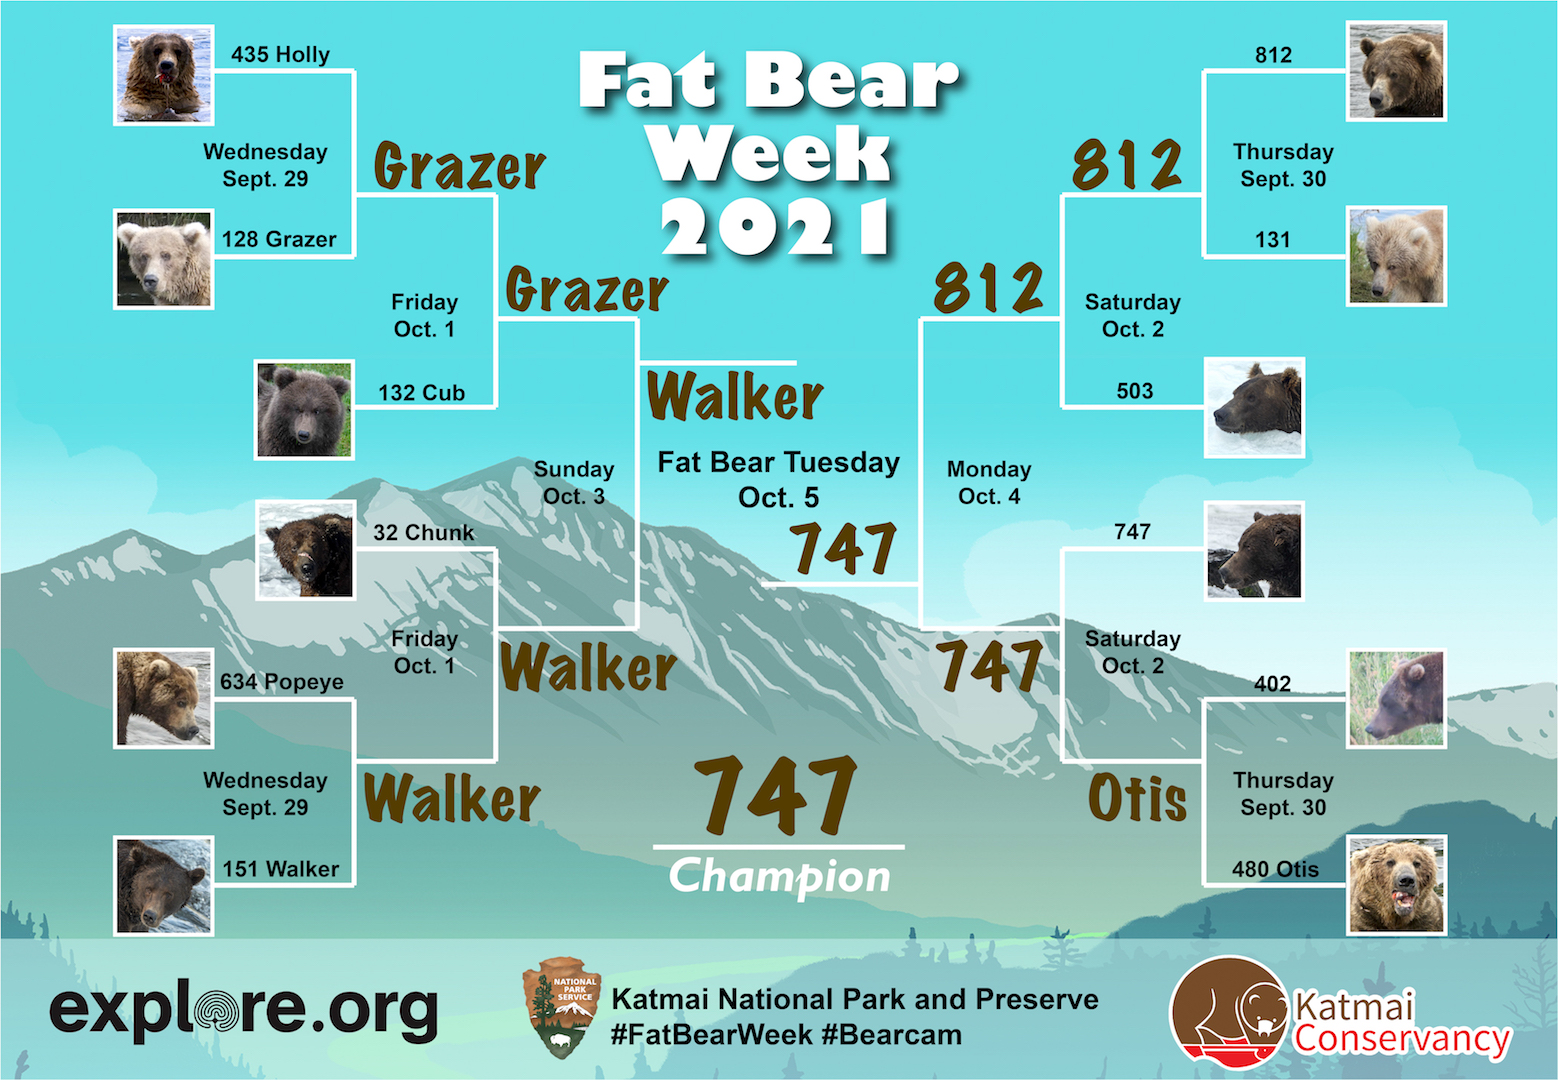 Title: Fat Bear Week 2021 Bracket. 12 bears, six on each side. Four first round matches and 4 bears that get a bye into the second round. Winners are chosen. 747 is predicted to win.